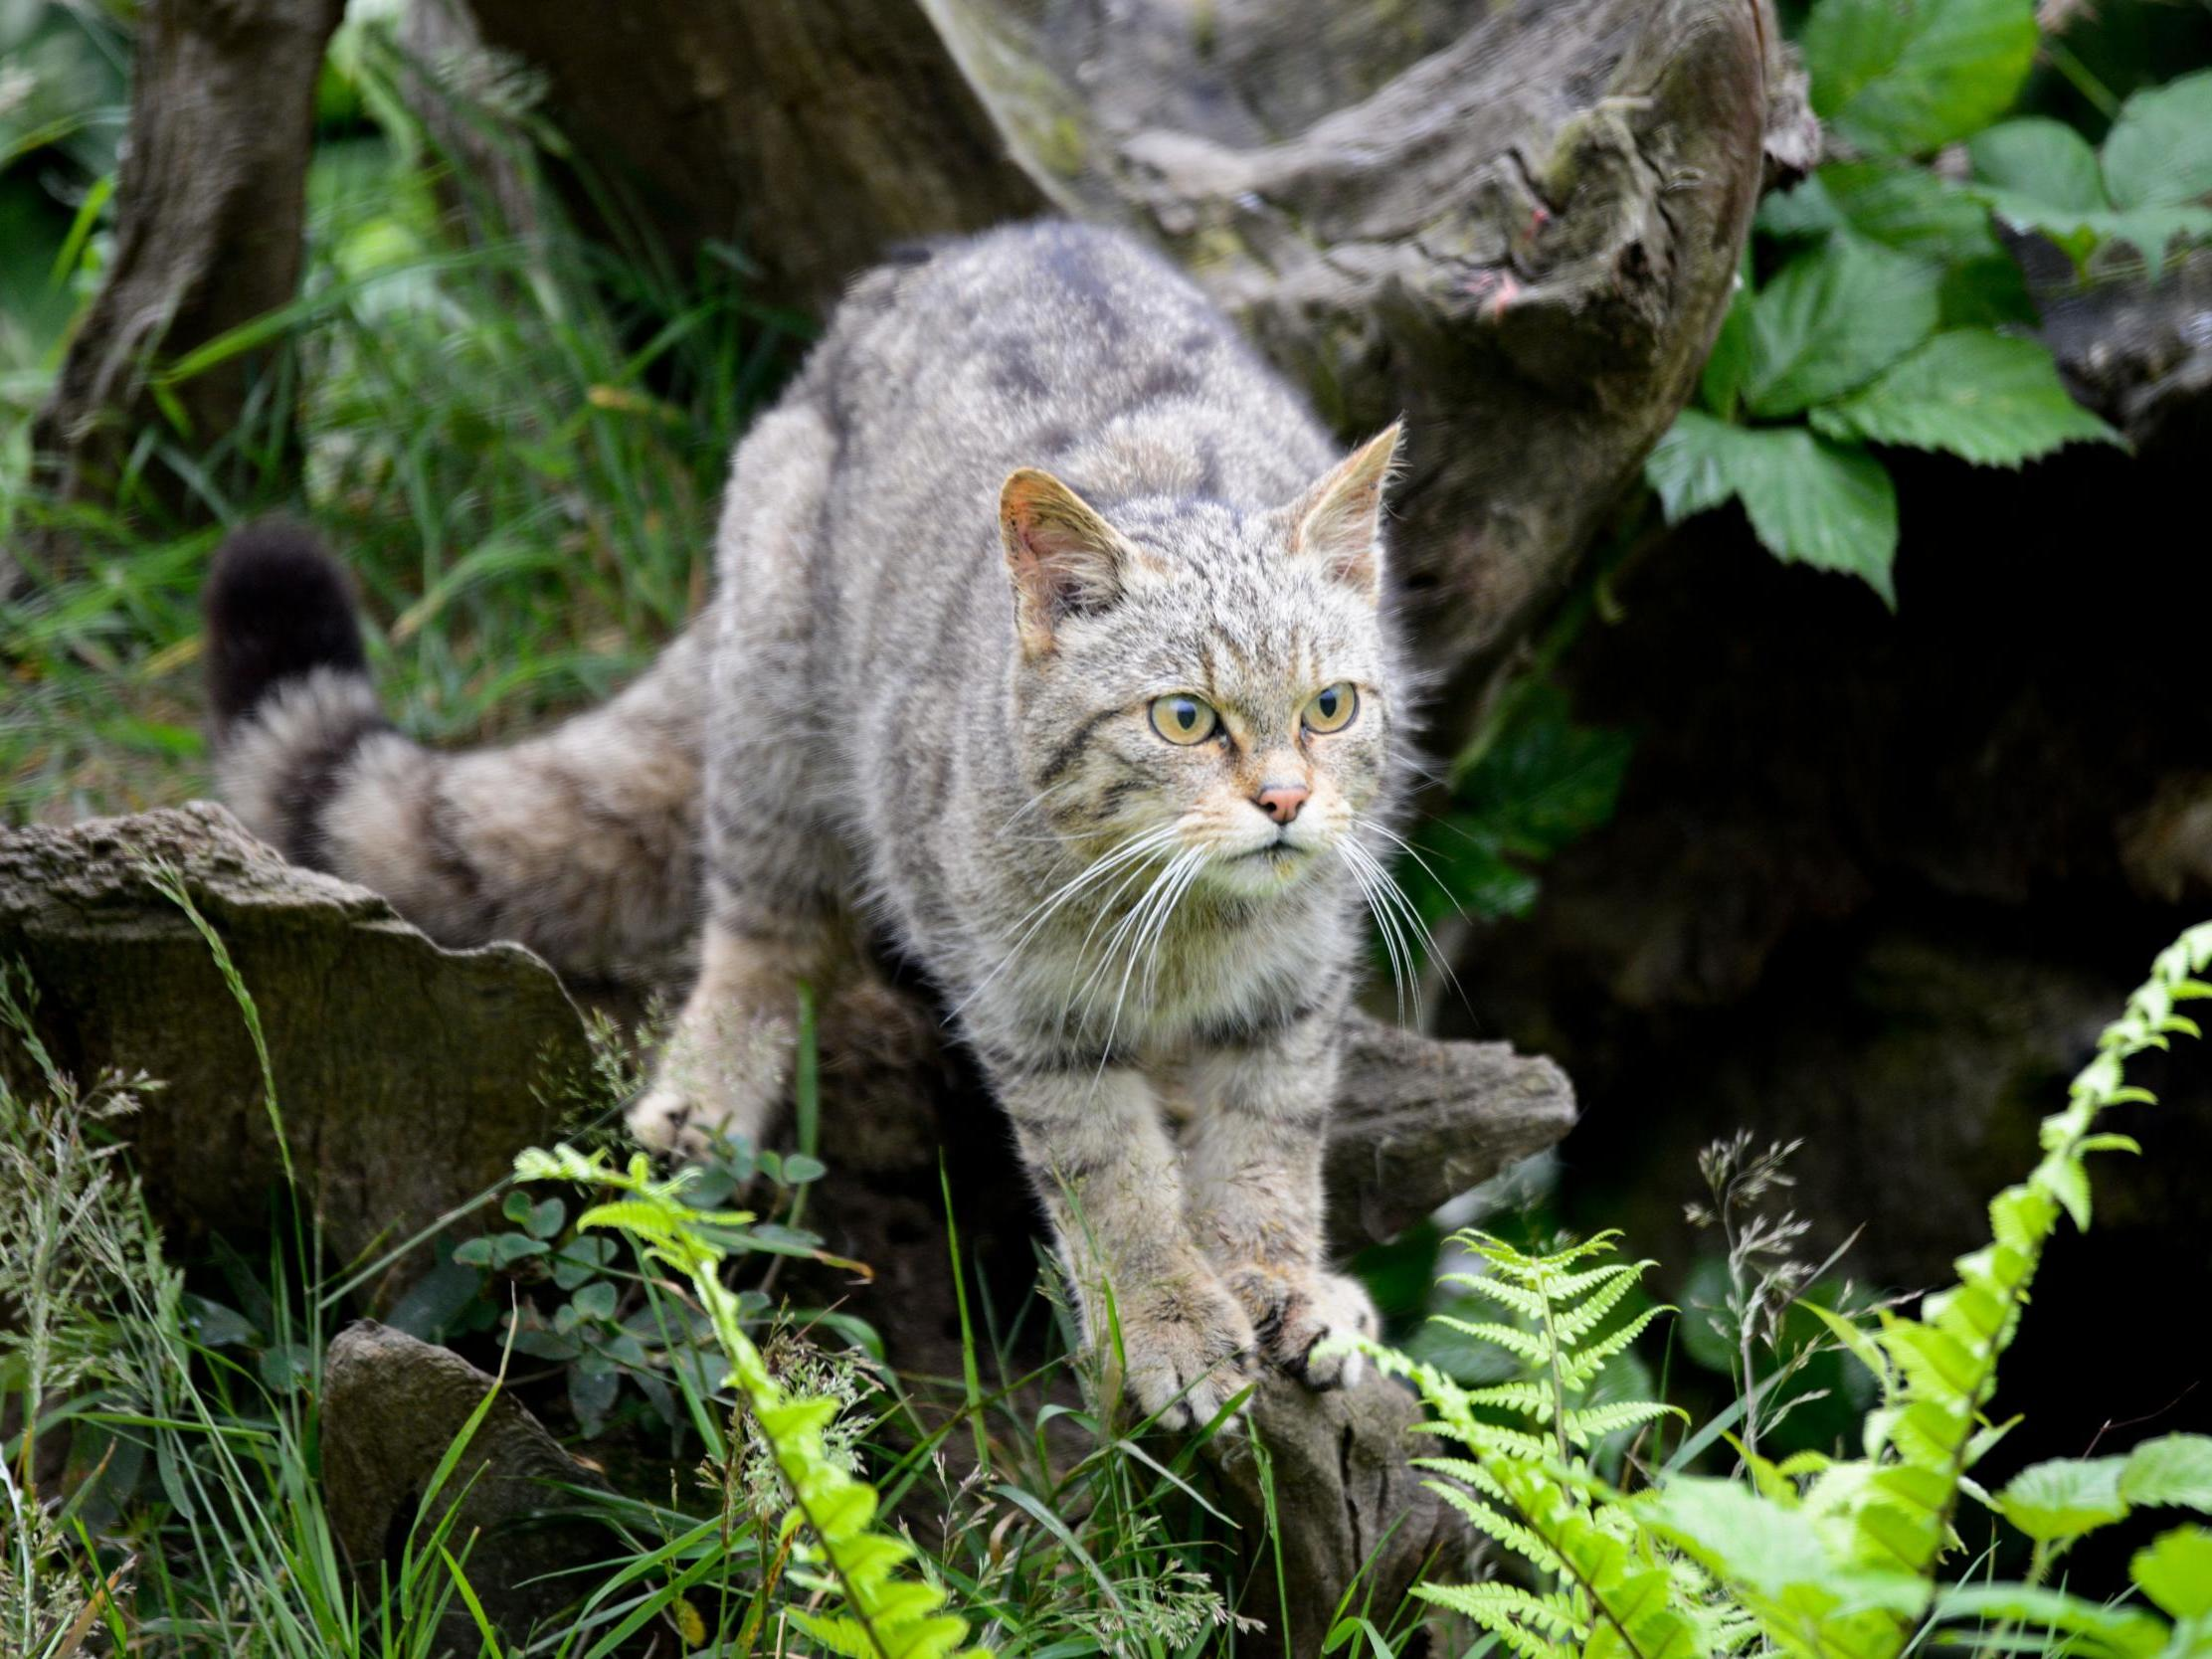 Return of England's wildcats: animals to be reintroduced after being declared extinct in 19th century